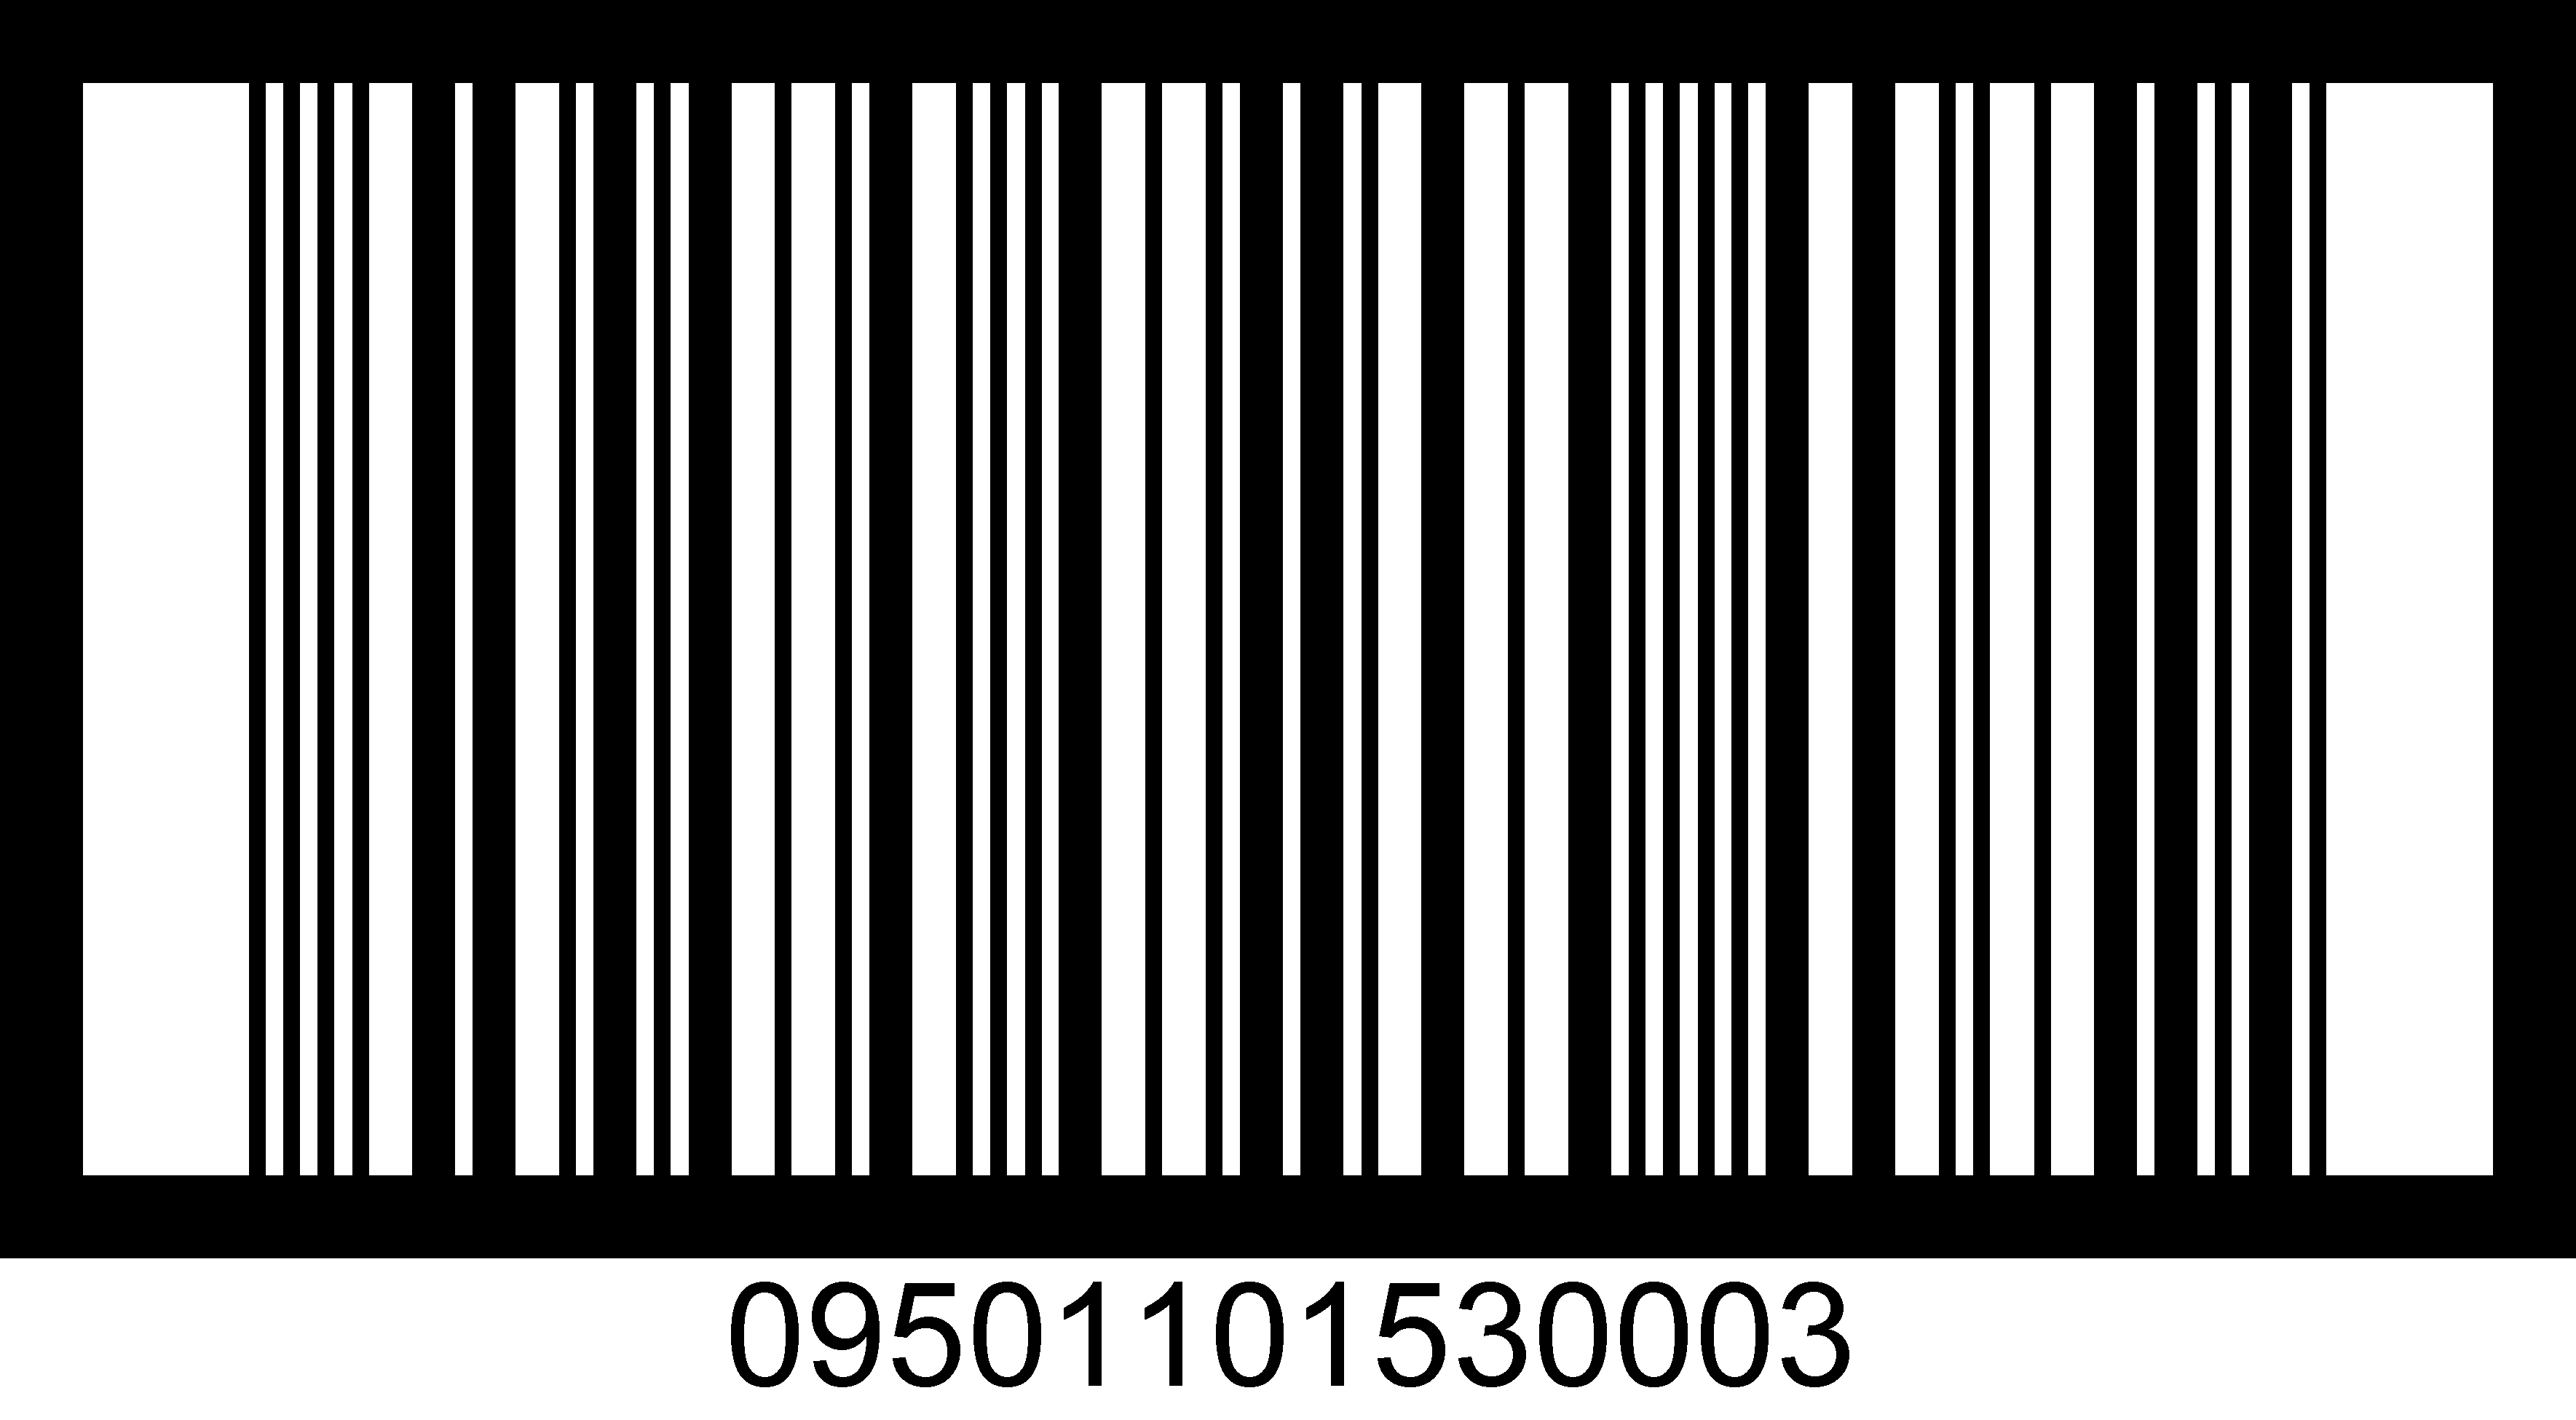 One Dimensional 1D Barcodes